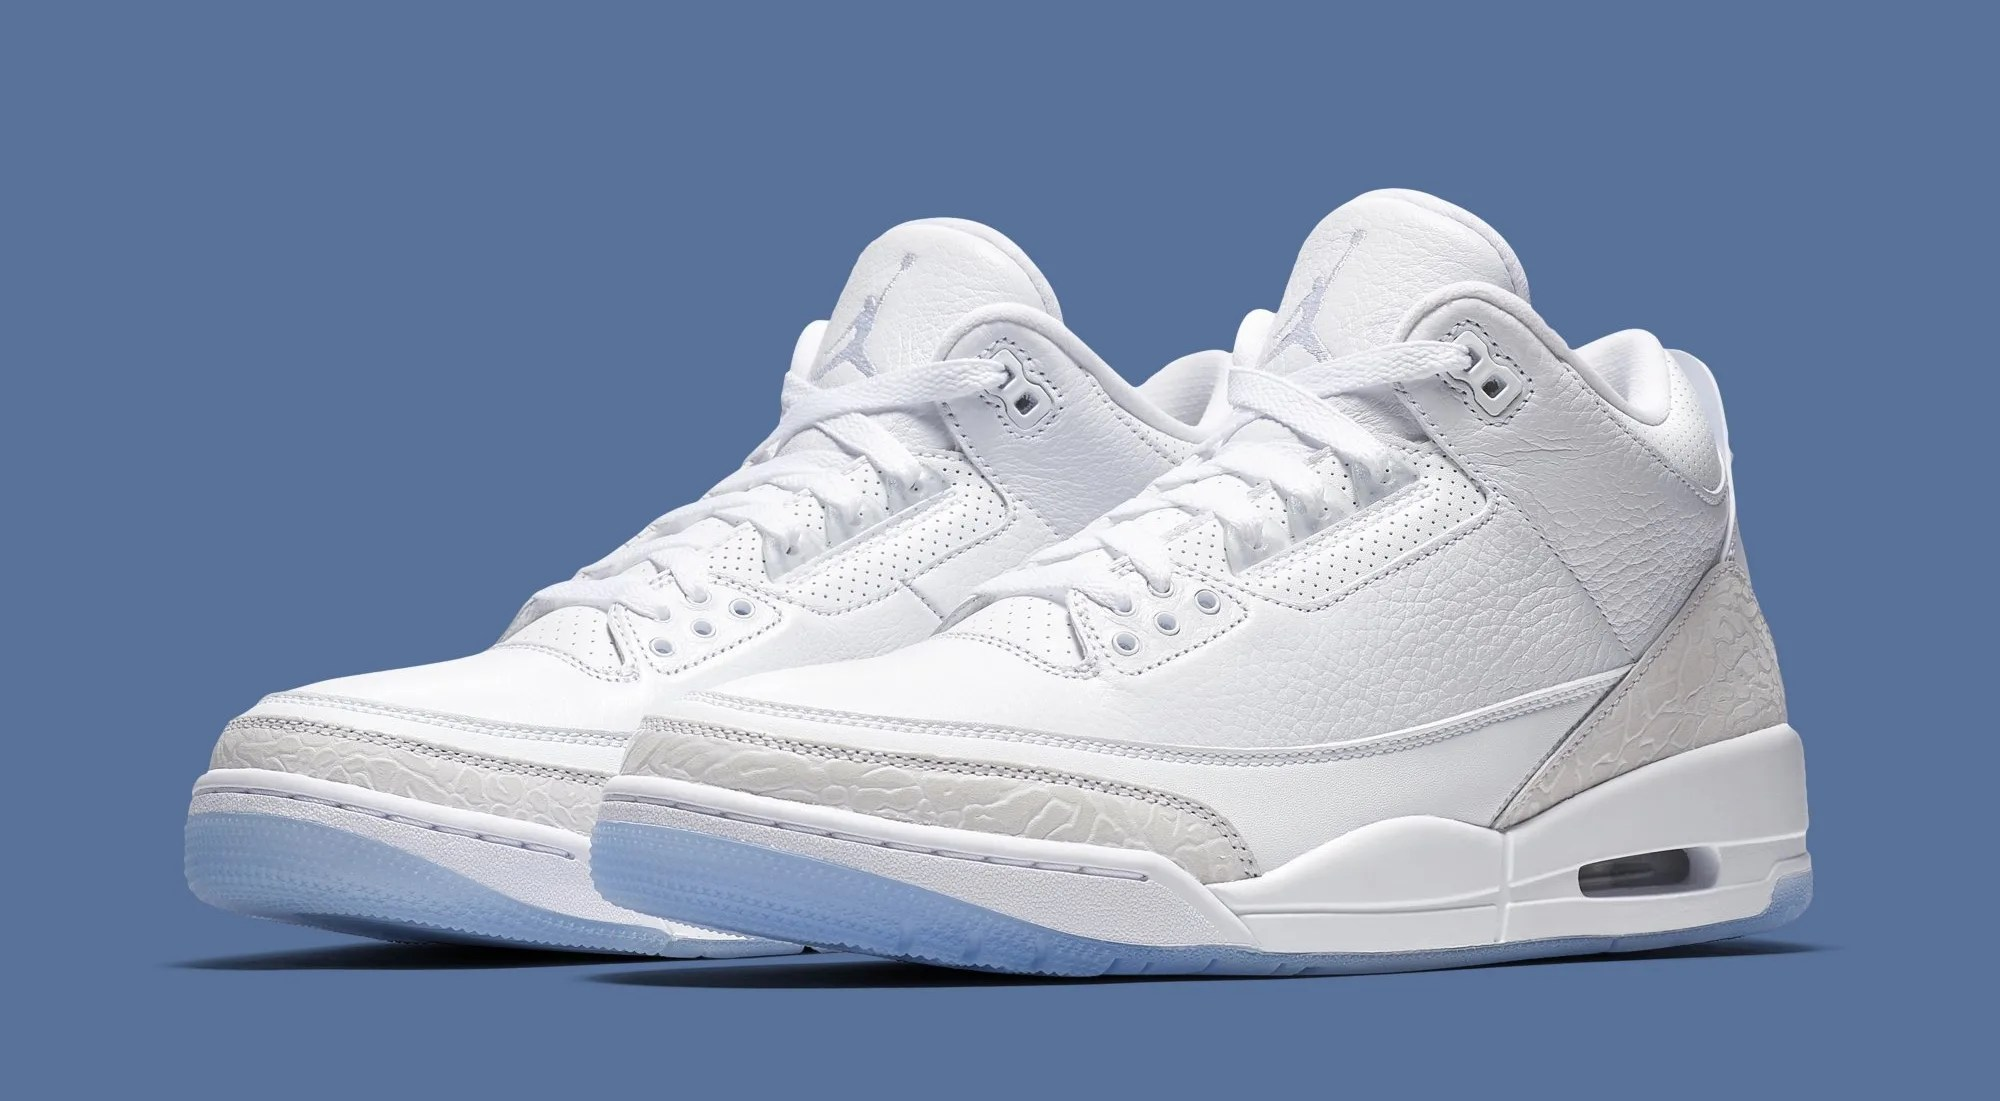 Air Jordan 3  Triple White  136064 111 Release Date   Sole Collector Air Jordan 3  III